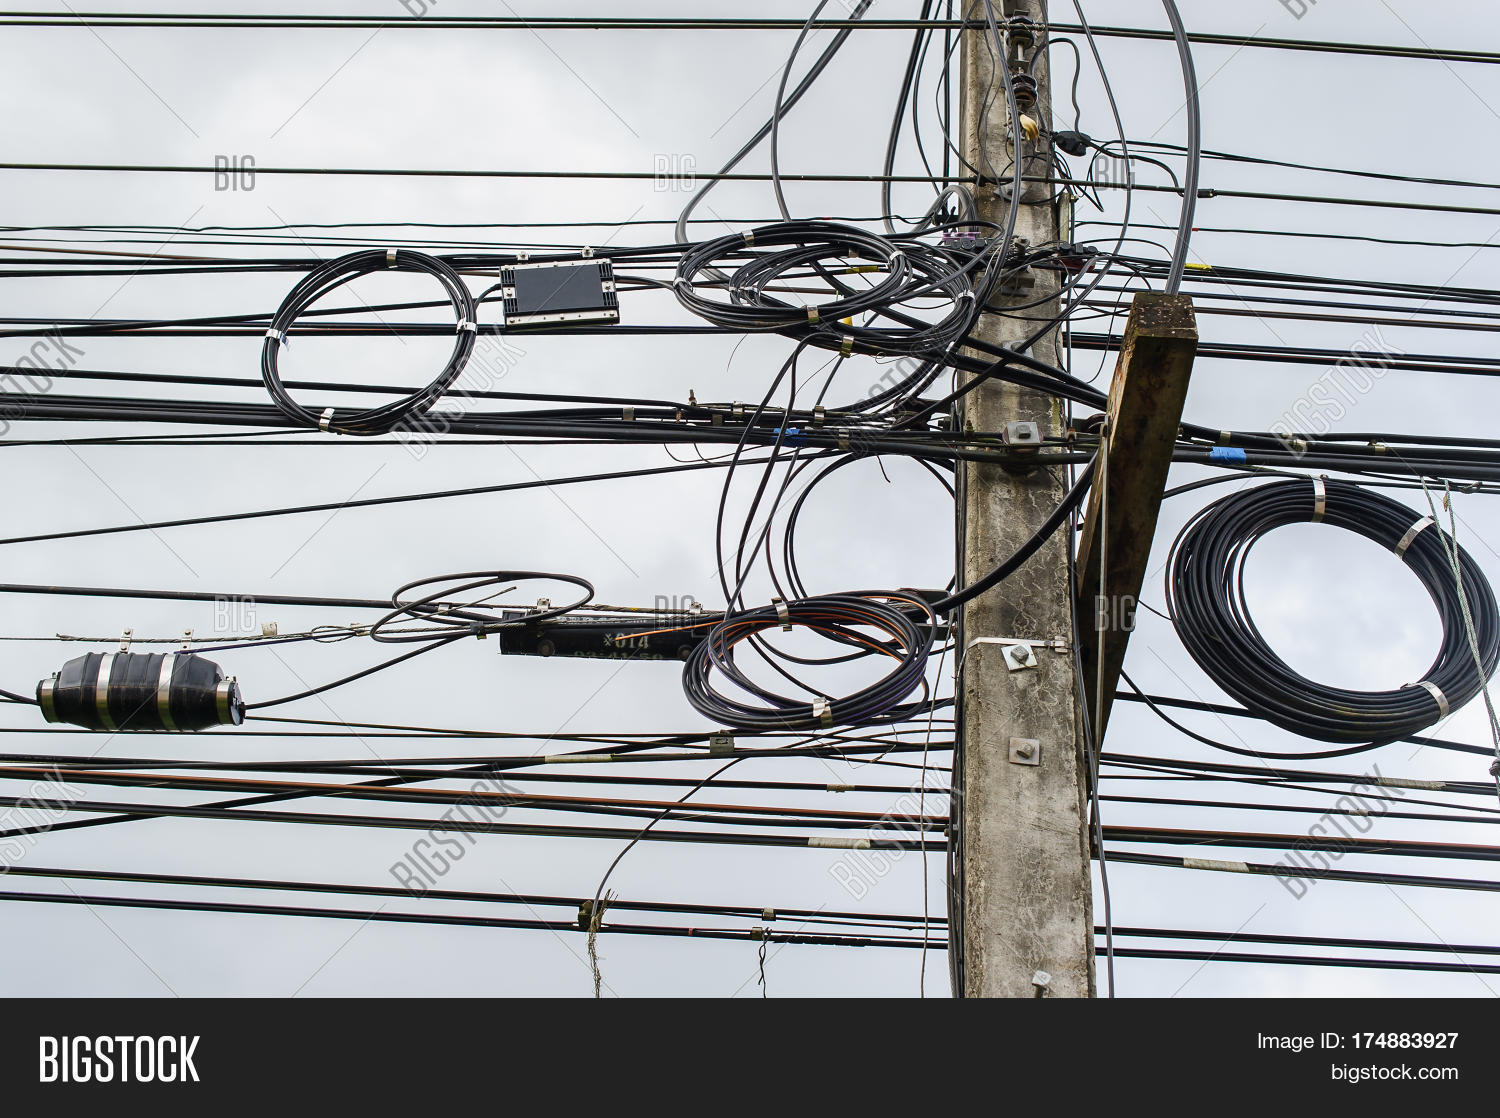 high voltage power pole with wires tangled wire and cable clutter